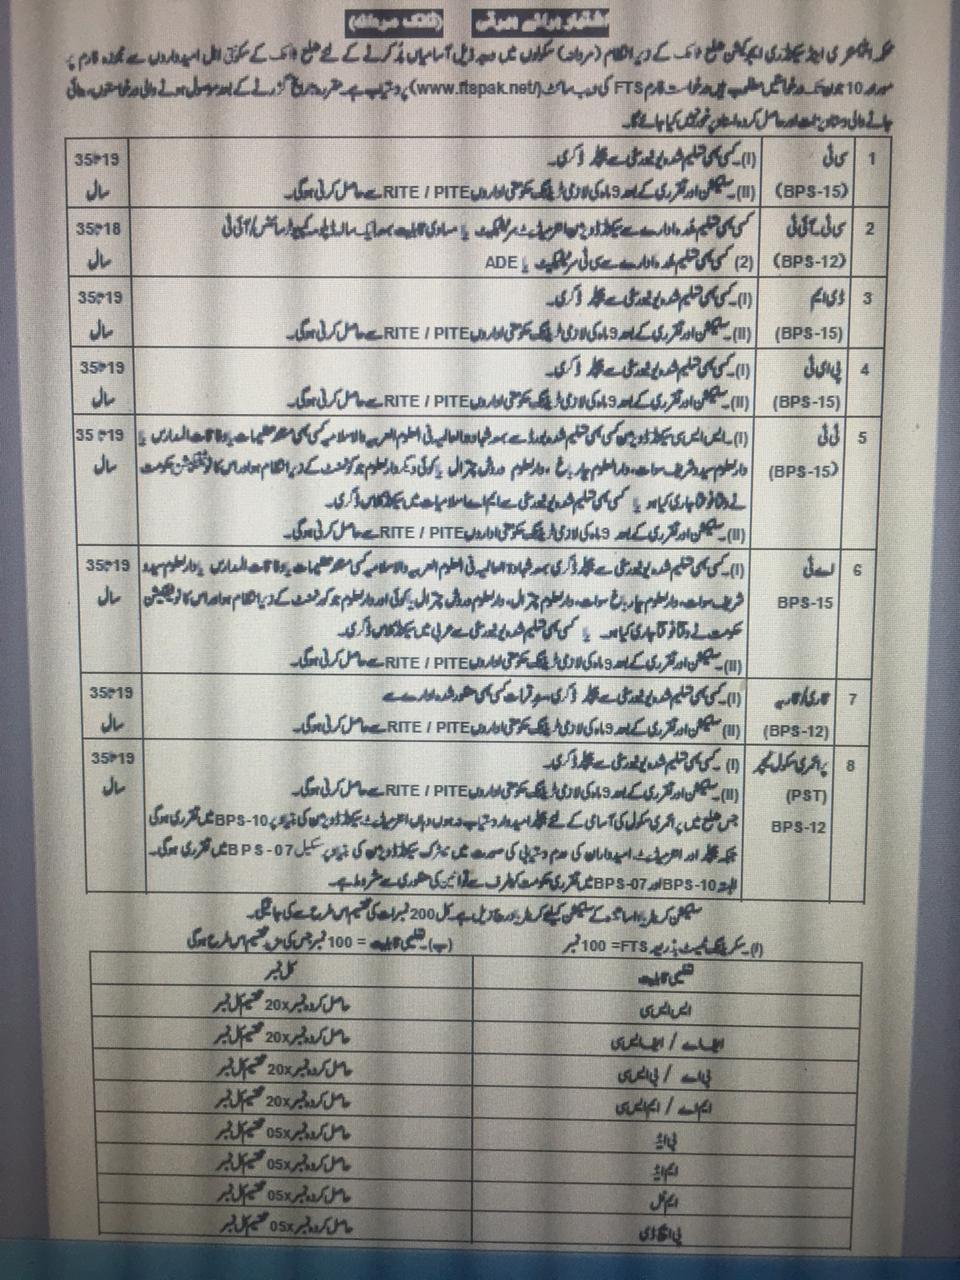 elementary and secondary education district tank men[ESED kpk latest